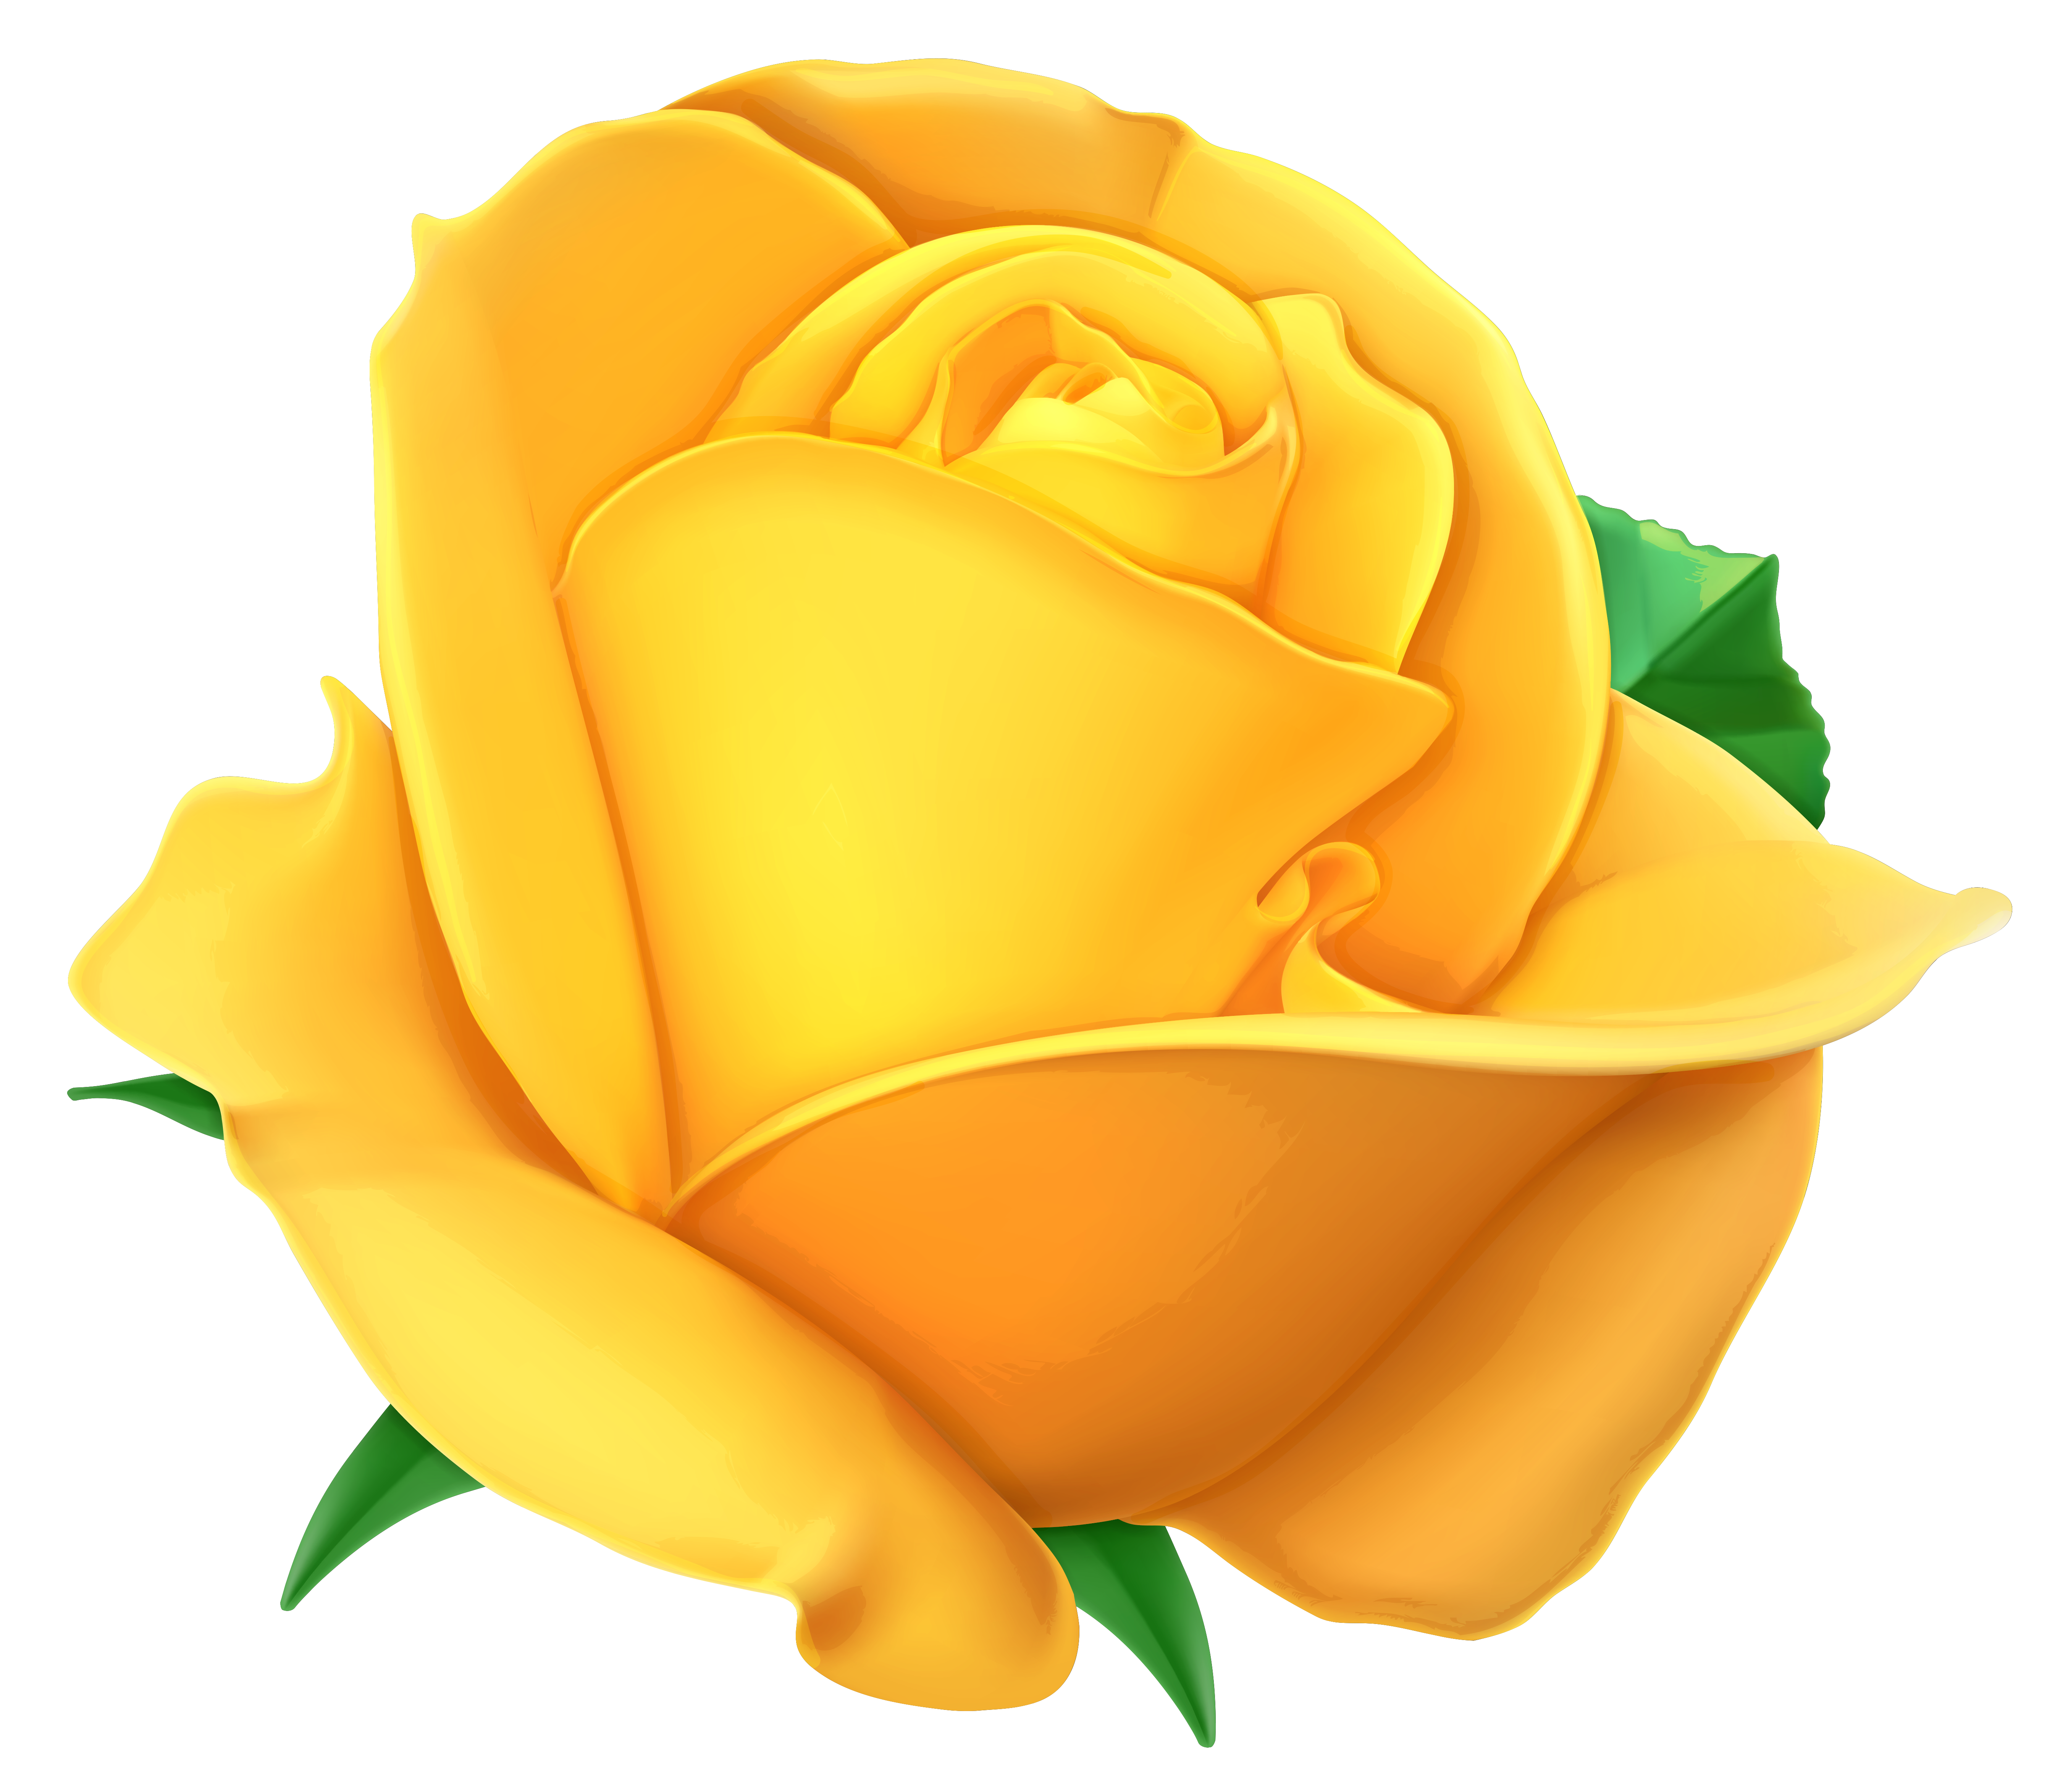 ... Yellow Rose Clipart - cli - Yellow Rose Clipart